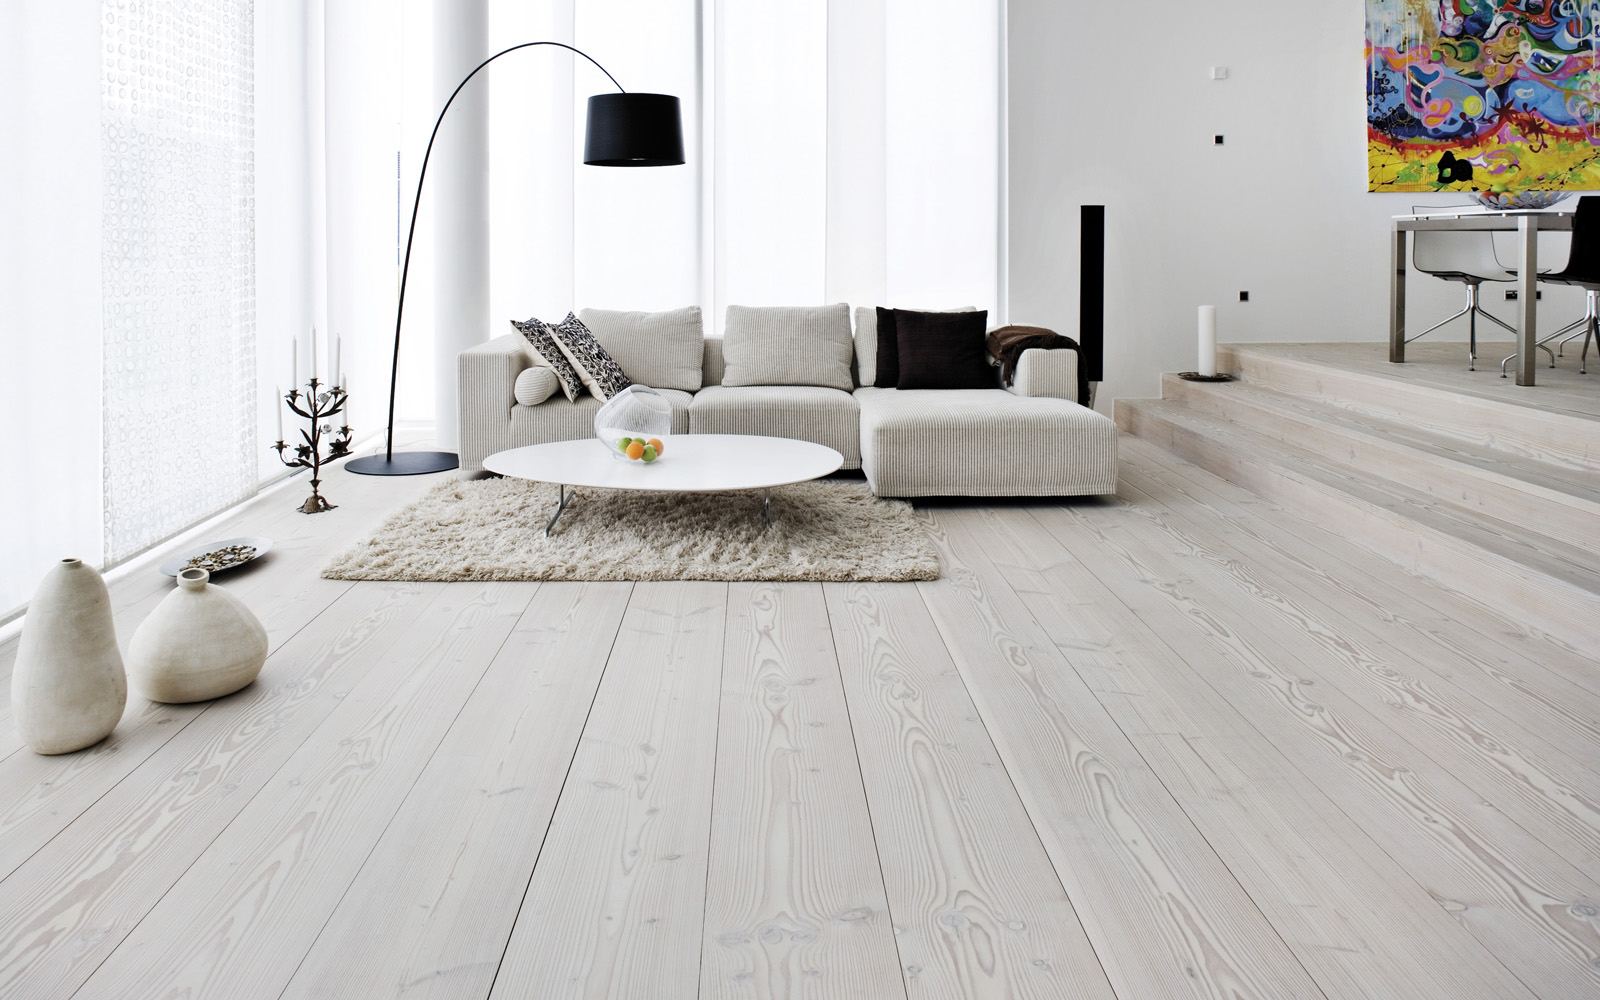 White Wood A New Design For Your Living Room   Articles   Katsoulakis Part 35